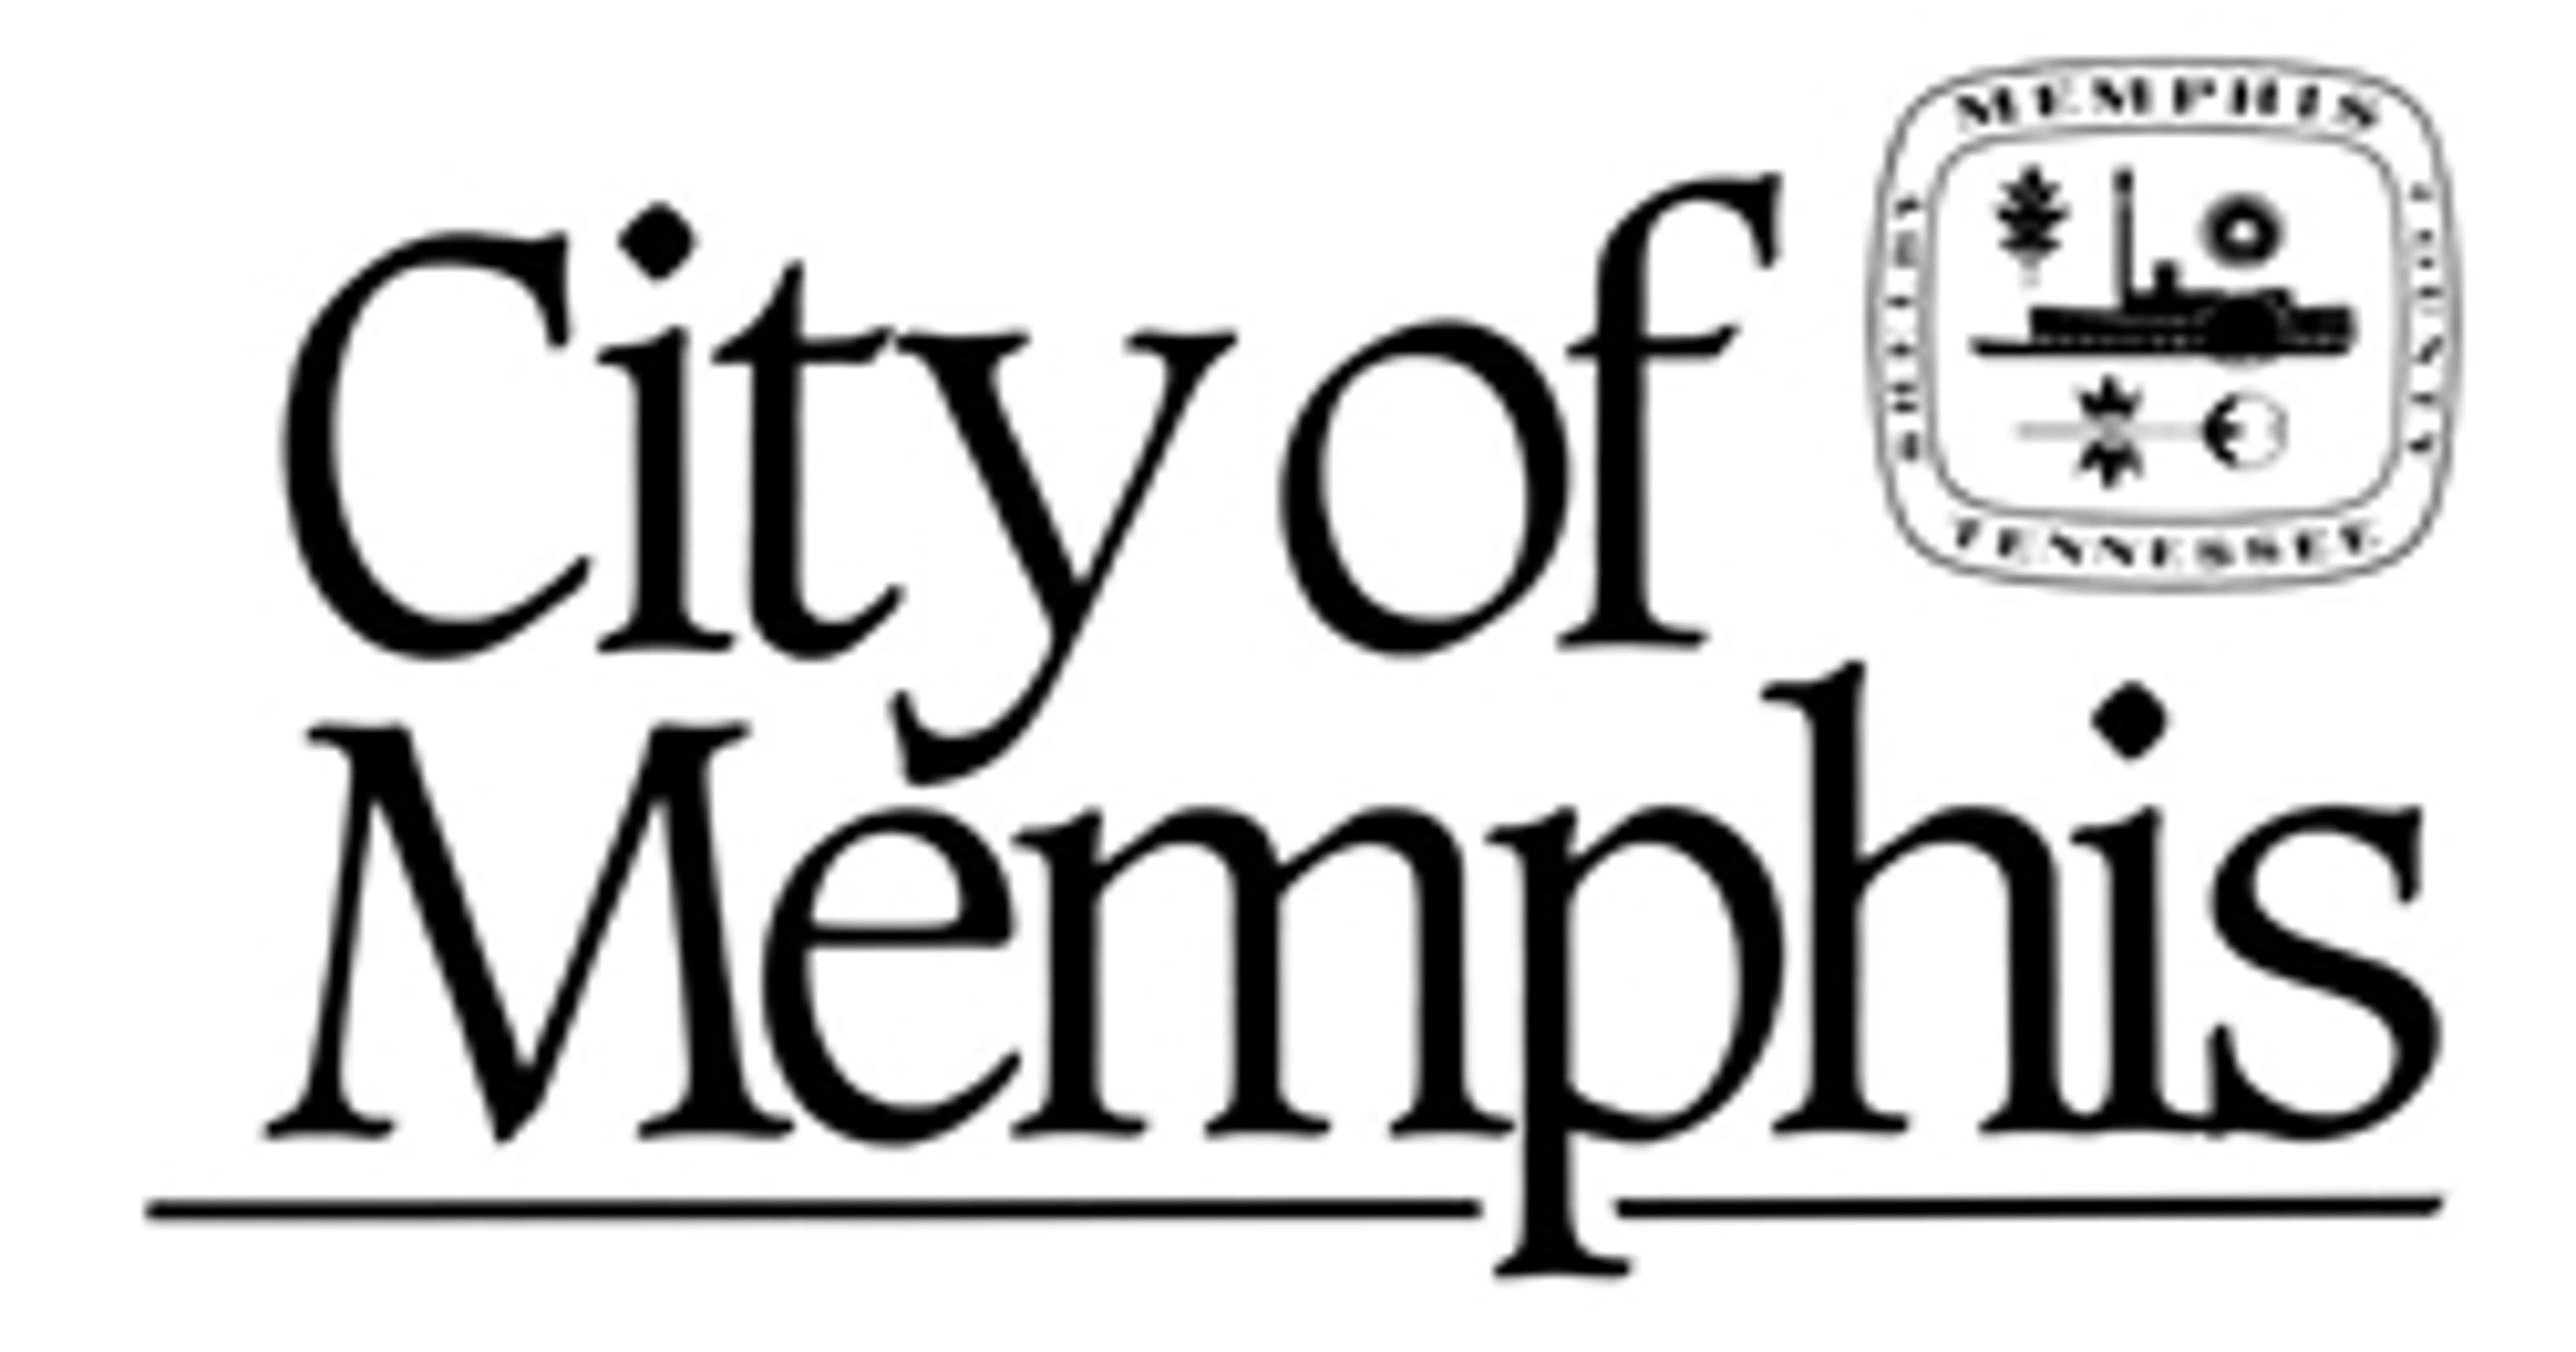 City of Memphis employee accused of sexual abuse fired